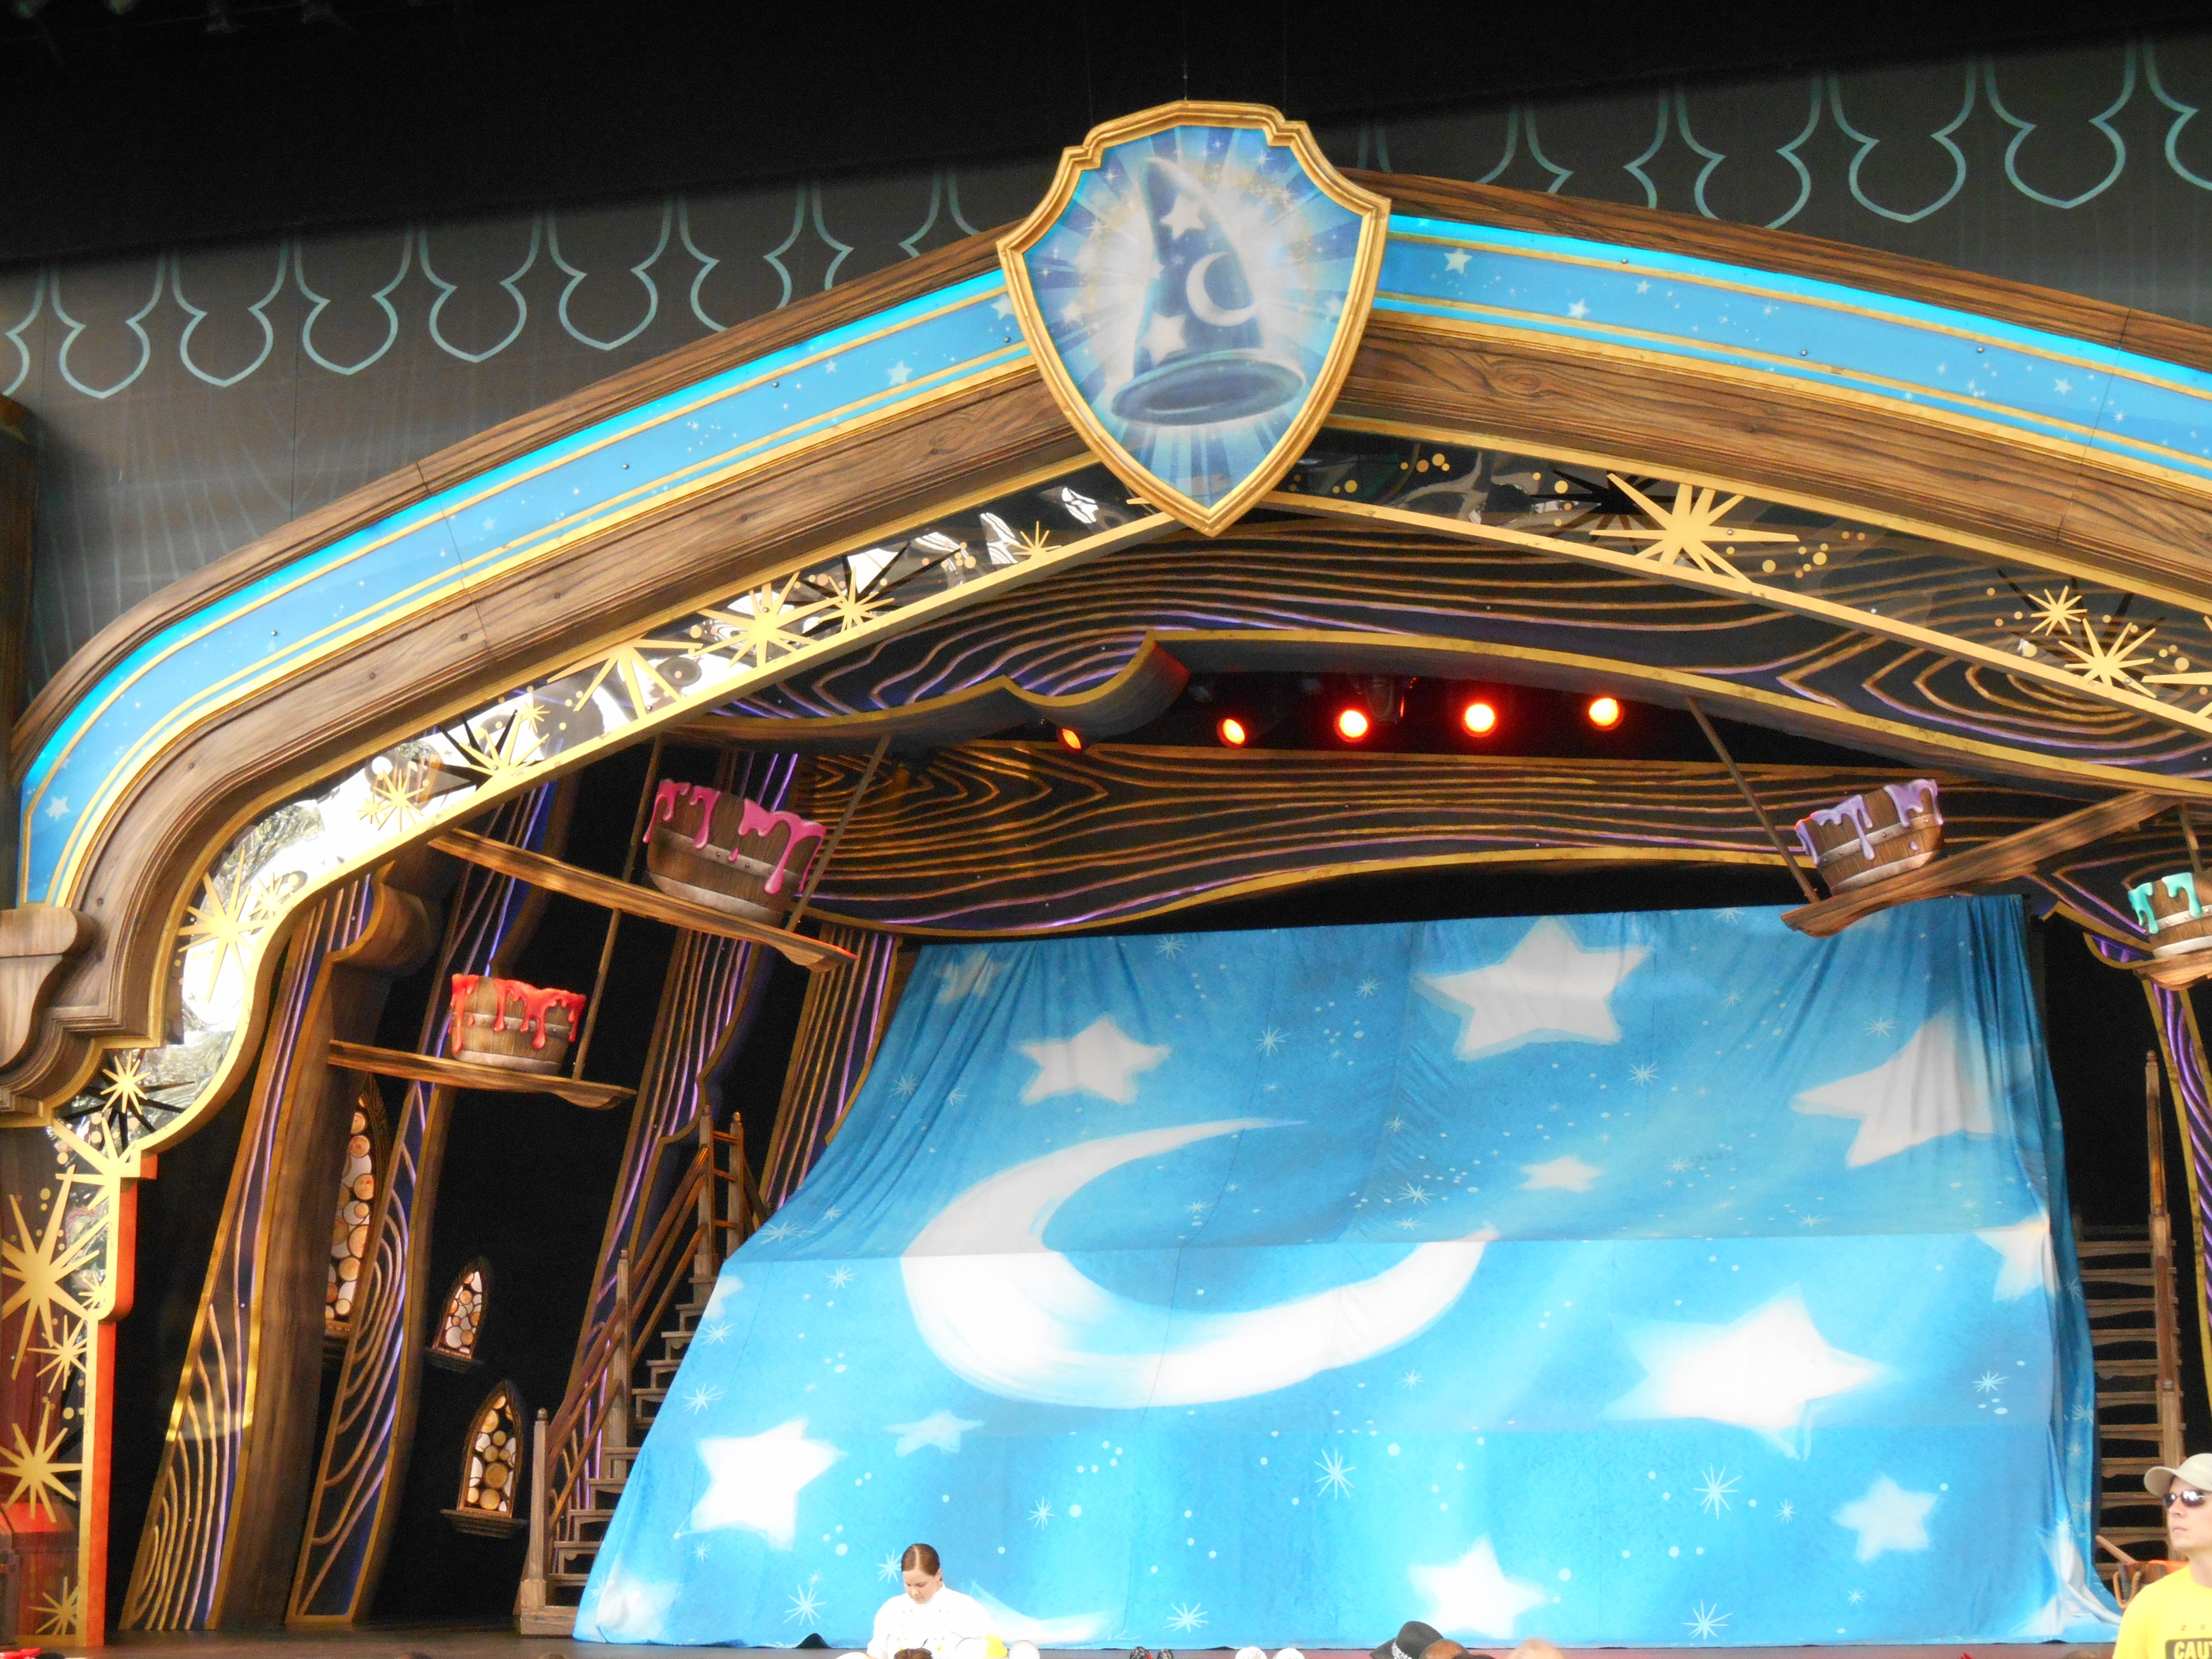 Part 2 of Mickey and the Magical Map performance at Disneyland is now available. Enjoy http://youtu.be/zE41qcIkwkw!